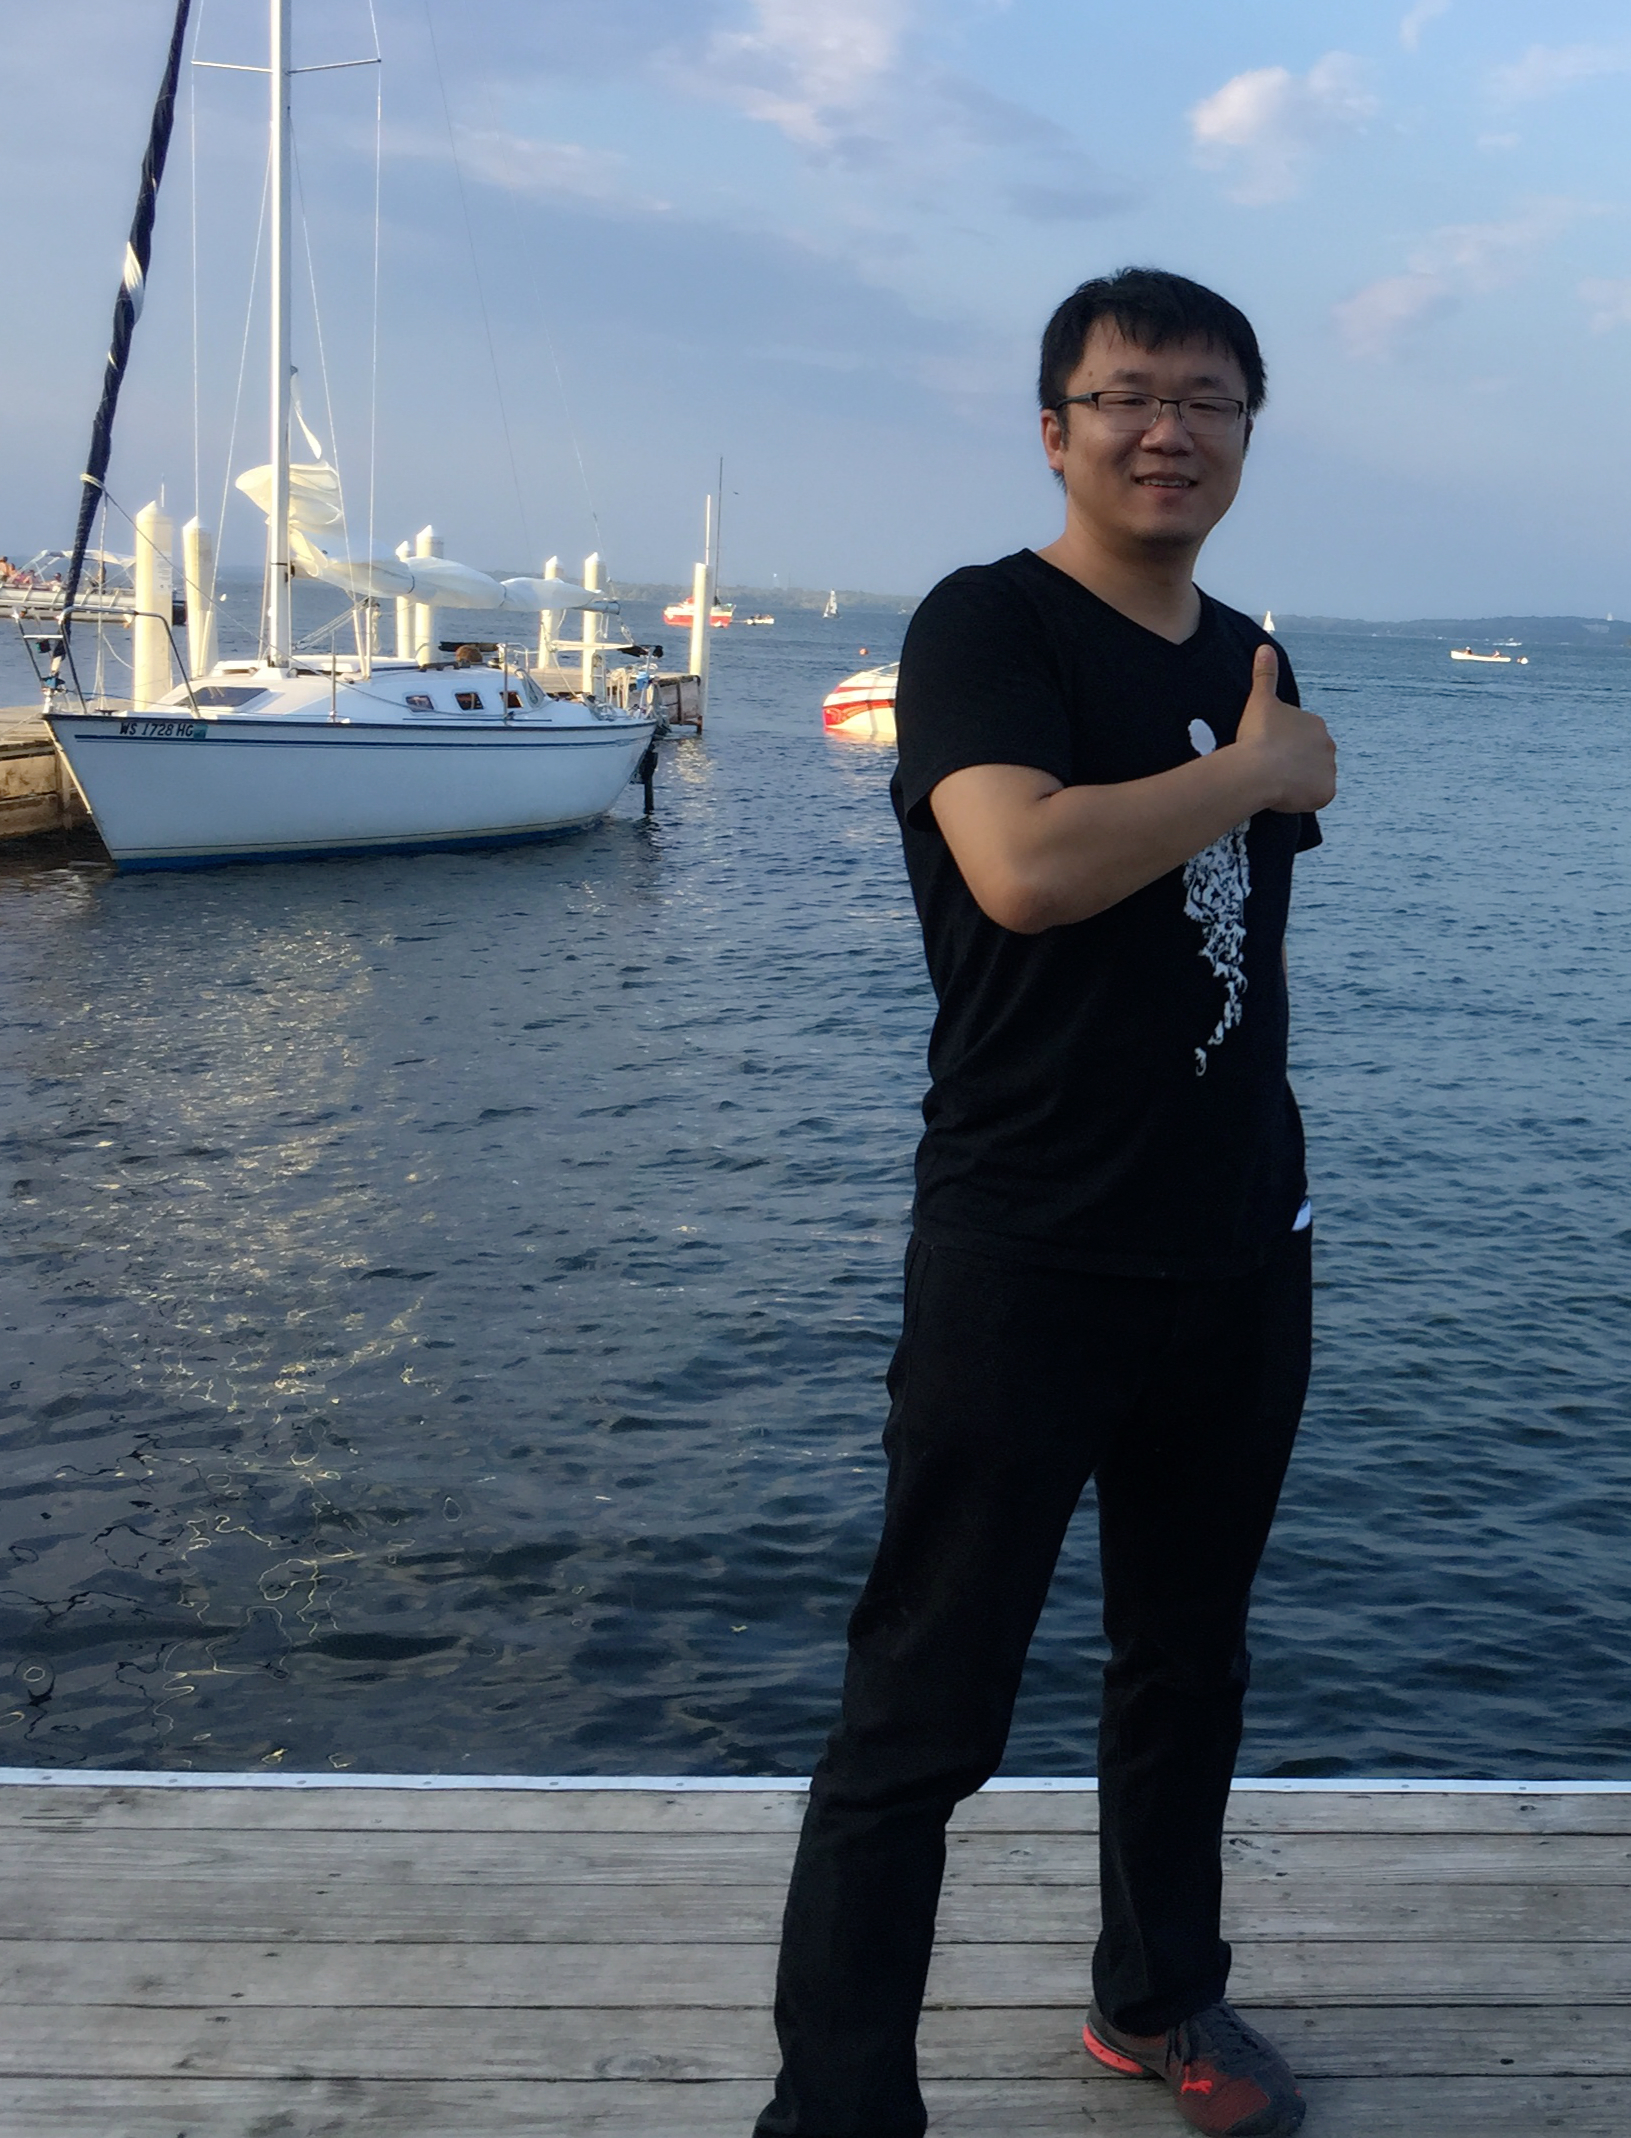 Dr. Peng Zhang standing in front of a boat